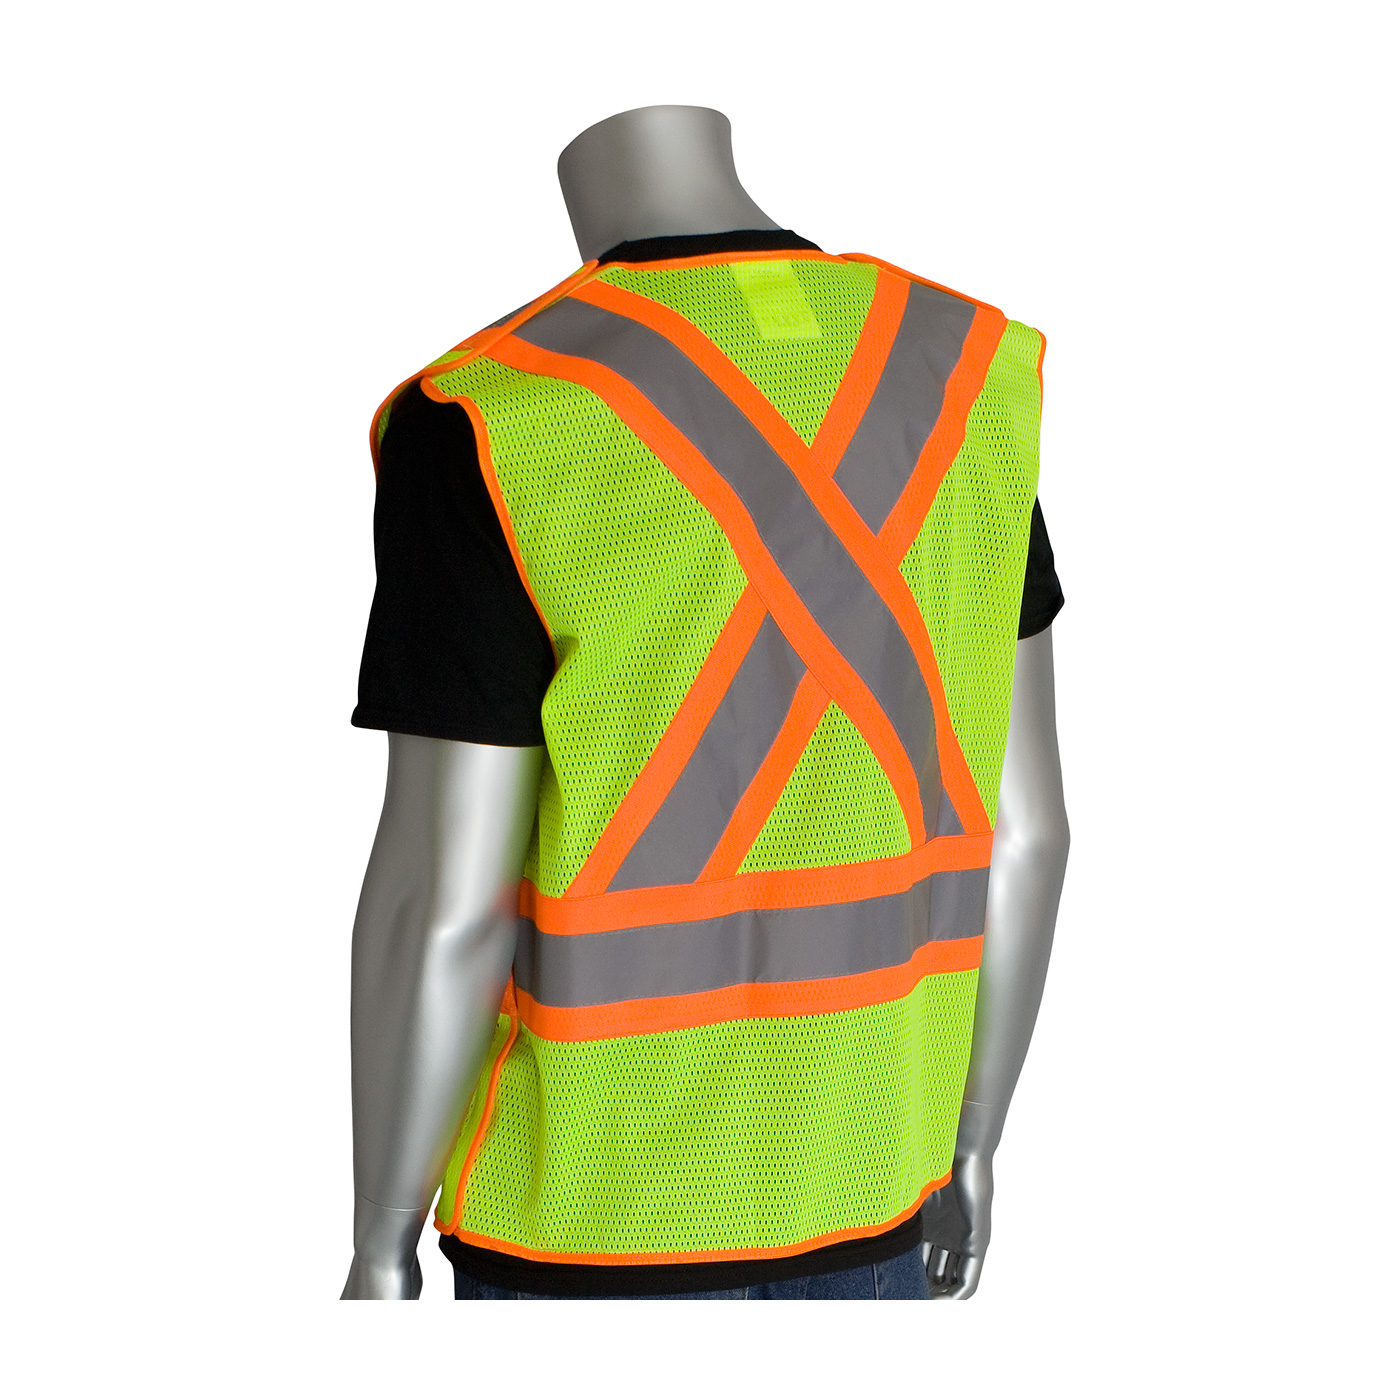 PIP® ANSI Type R Class 2 and CAN/CSA Z96 Two-Tone X-Back Breakaway Mesh Vest #302-0211LY